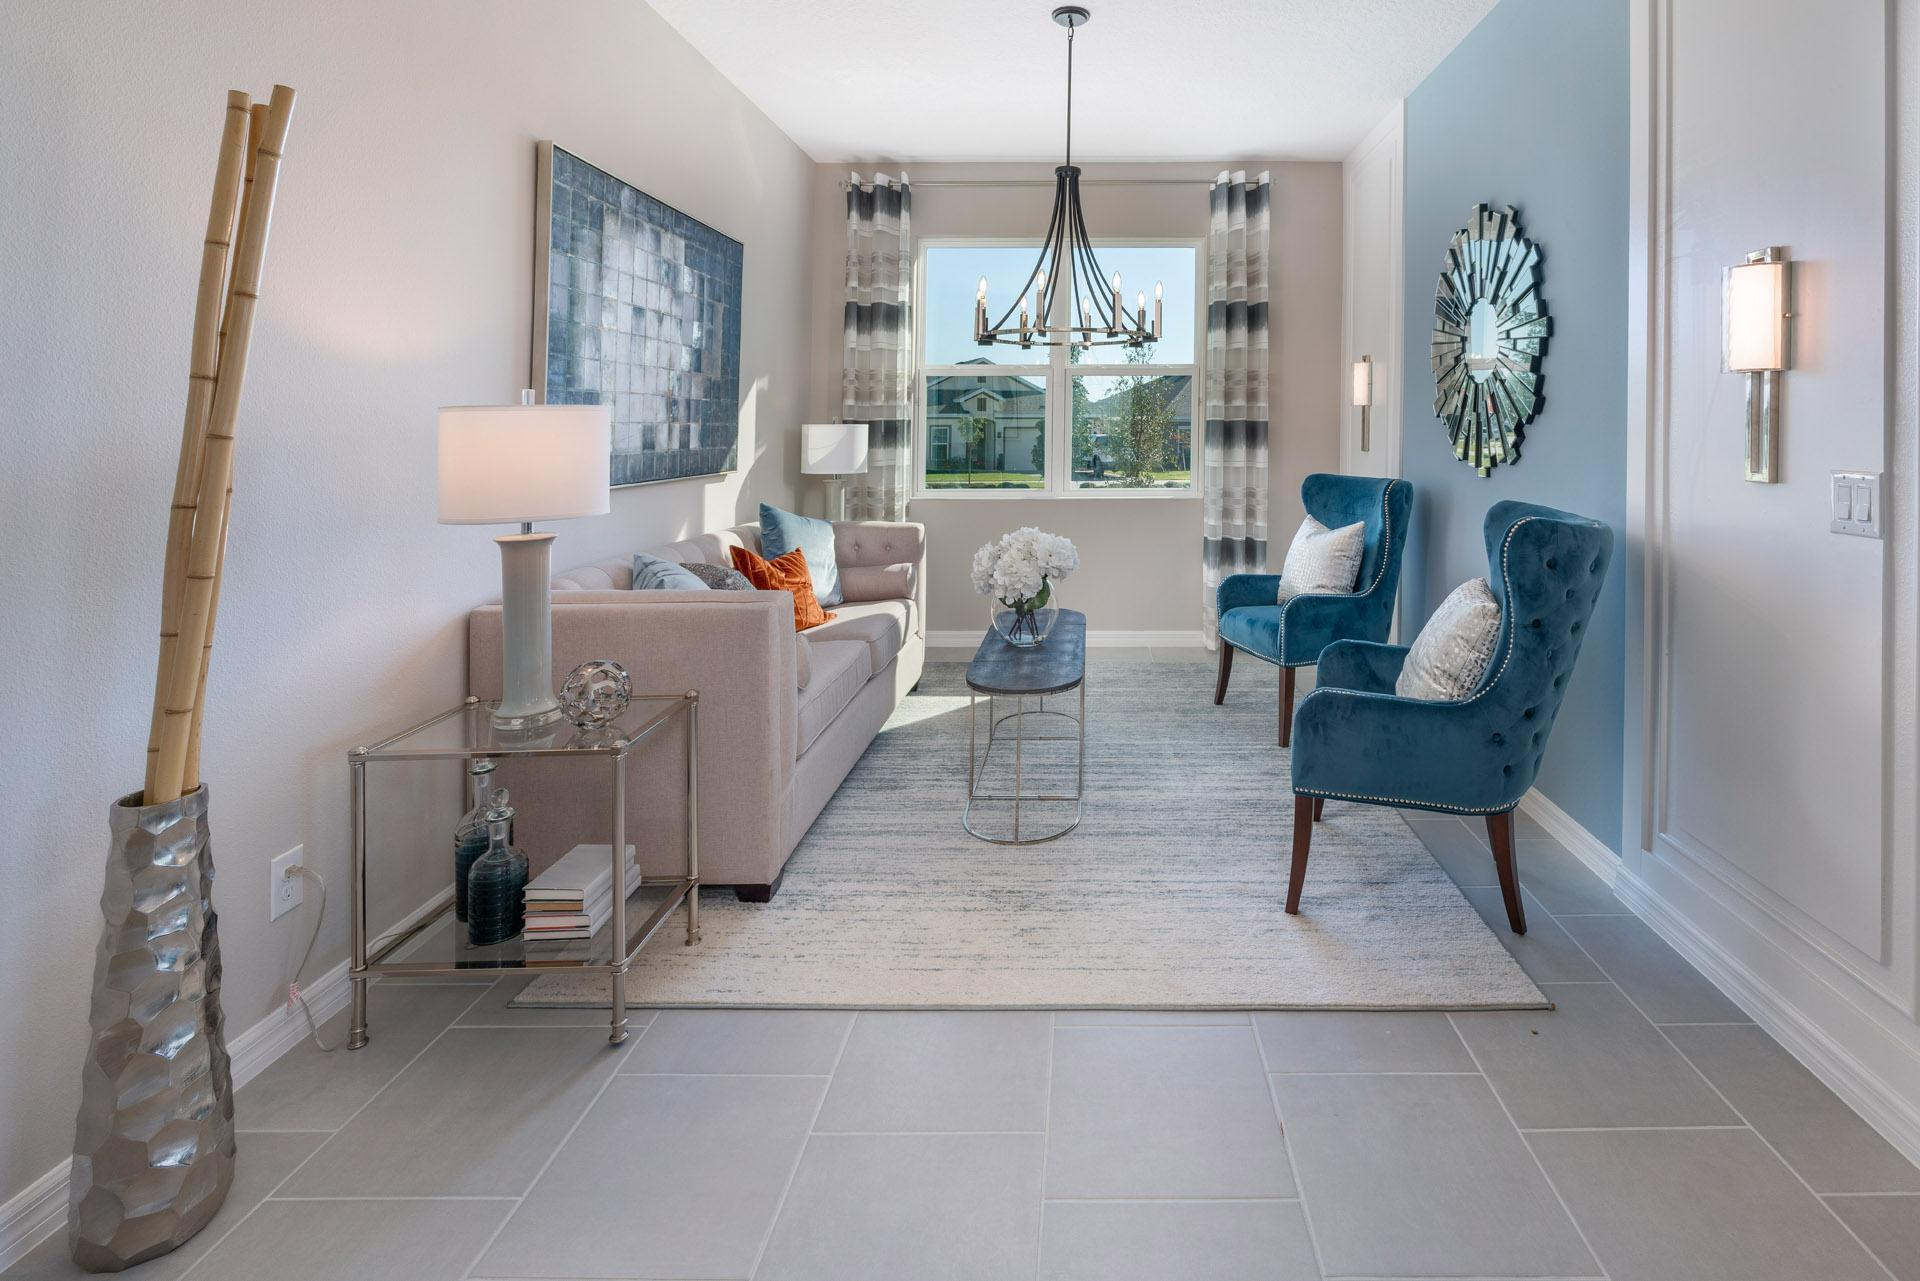 Living Area featured in the Kensington Flex By Hanover Family Builders in Orlando, FL